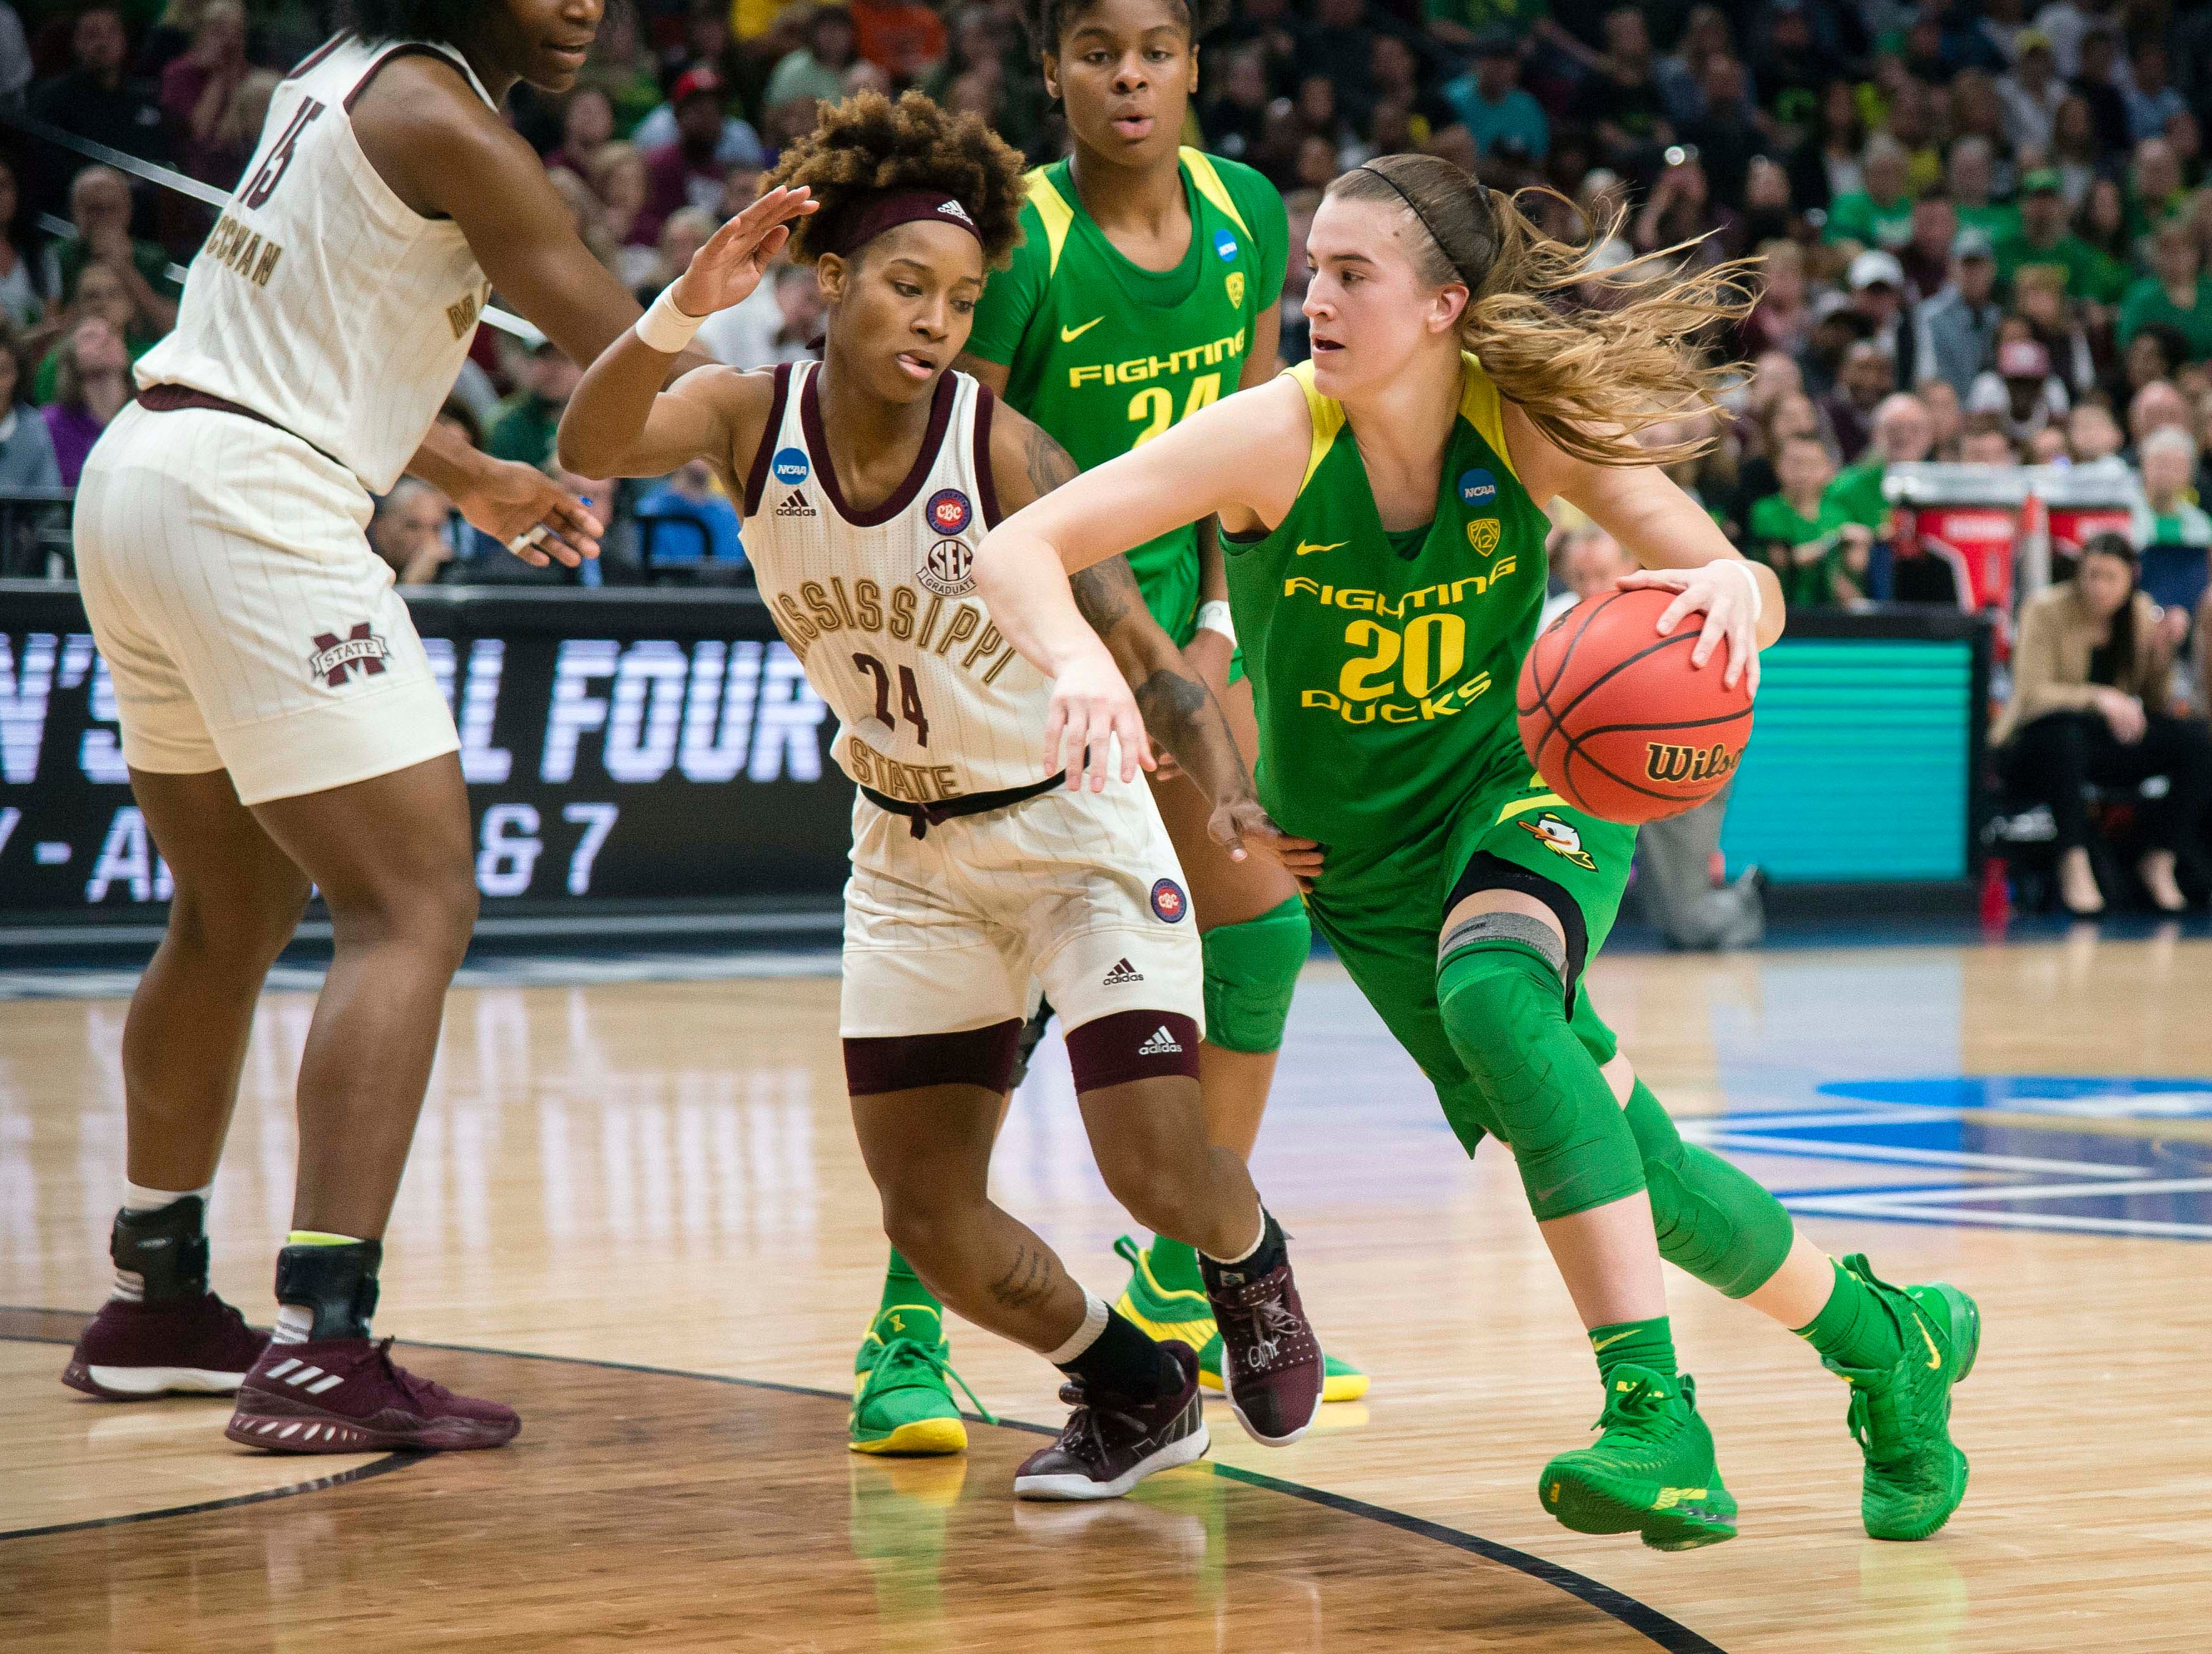 Oregon Ducks guard Sabrina Ionescu (20) drives past Mississippi State Bulldogs guard Jordan Danberry (24) during the second half in the championship game of the Portland regional in the women's 2019 NCAA Tournament at Moda Center. The Oregon Ducks beat the Mississippi State Bulldogs 88-84.